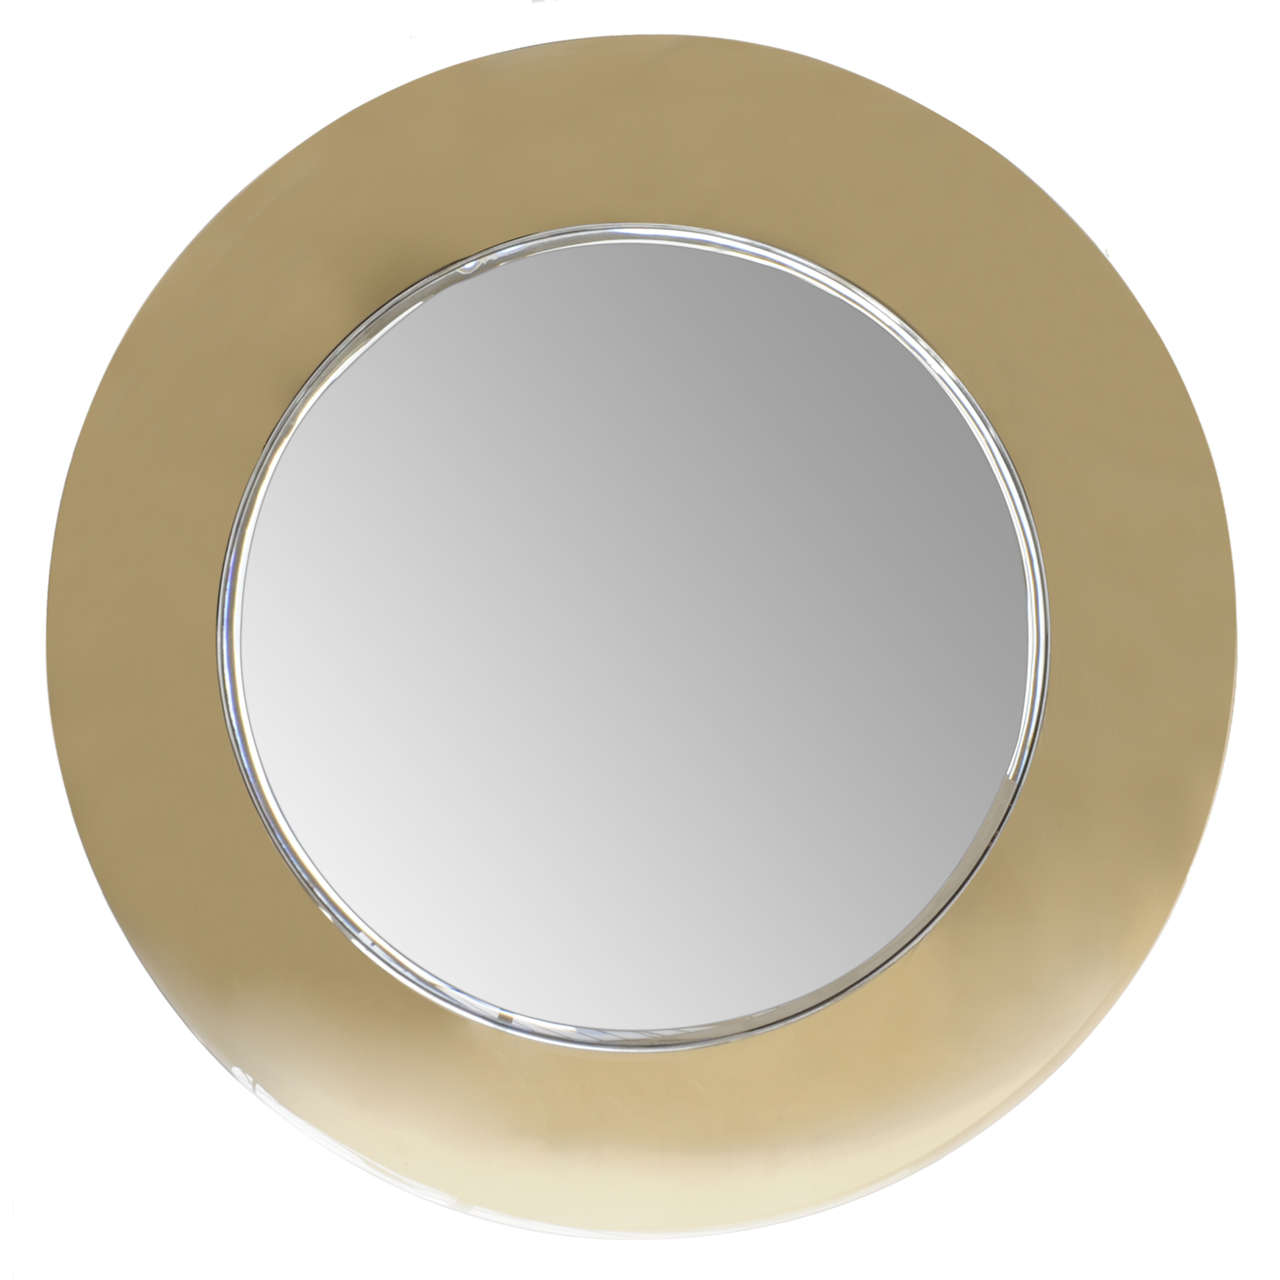 Curved mirror by fontana arte for sale at 1stdibs for Concave mirror